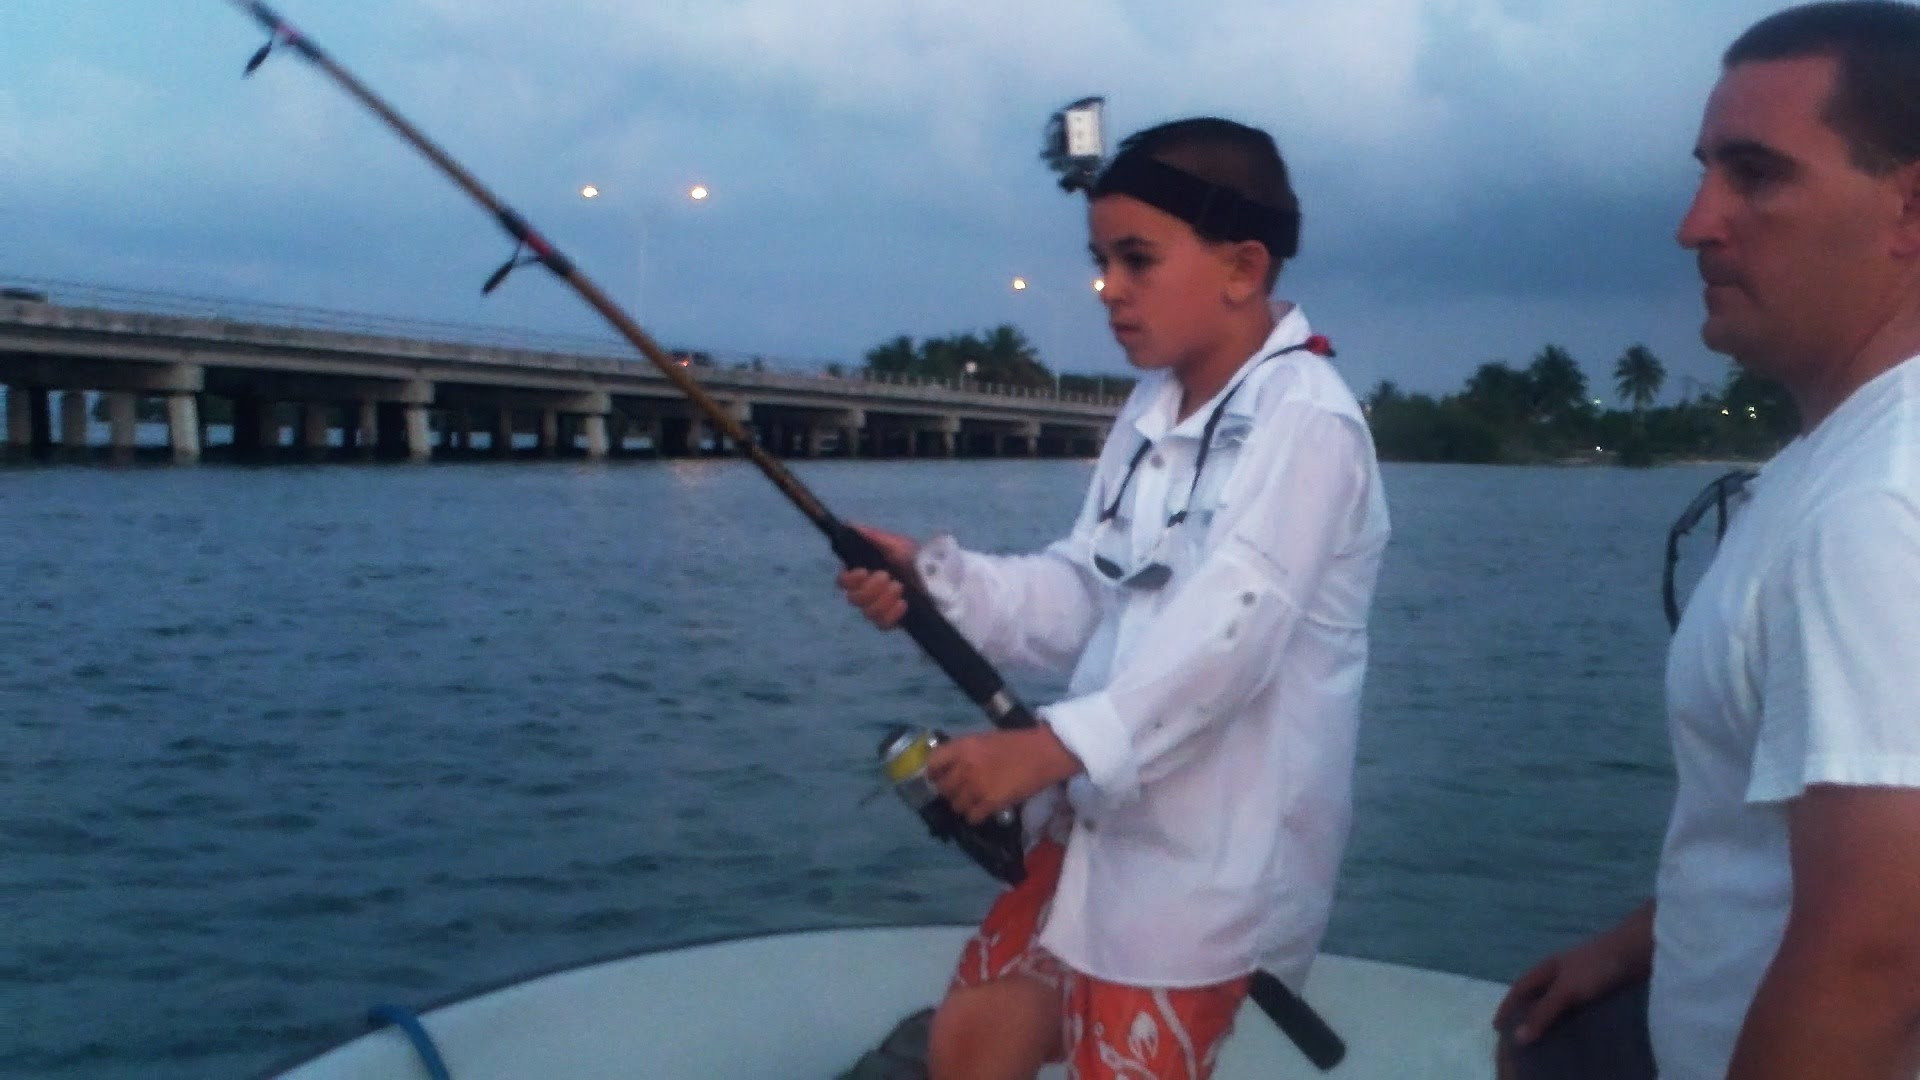 Miami Kid Catches Monster Fish